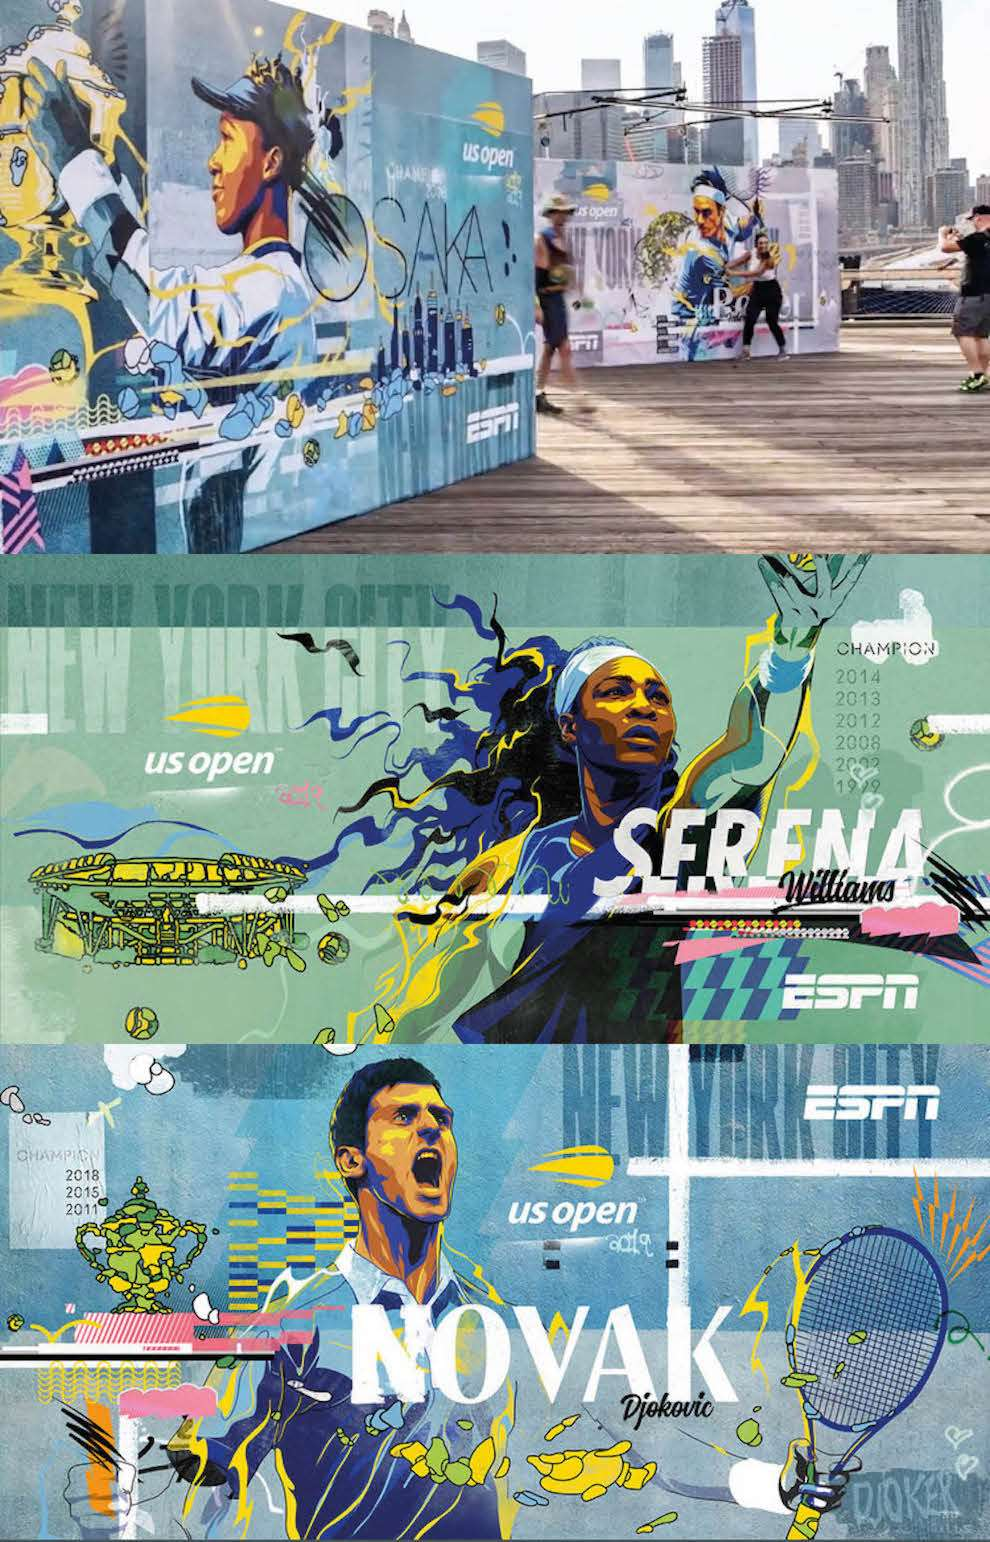 Matt Taylor, Digital photographic illustration of tennis player for the tennis US open